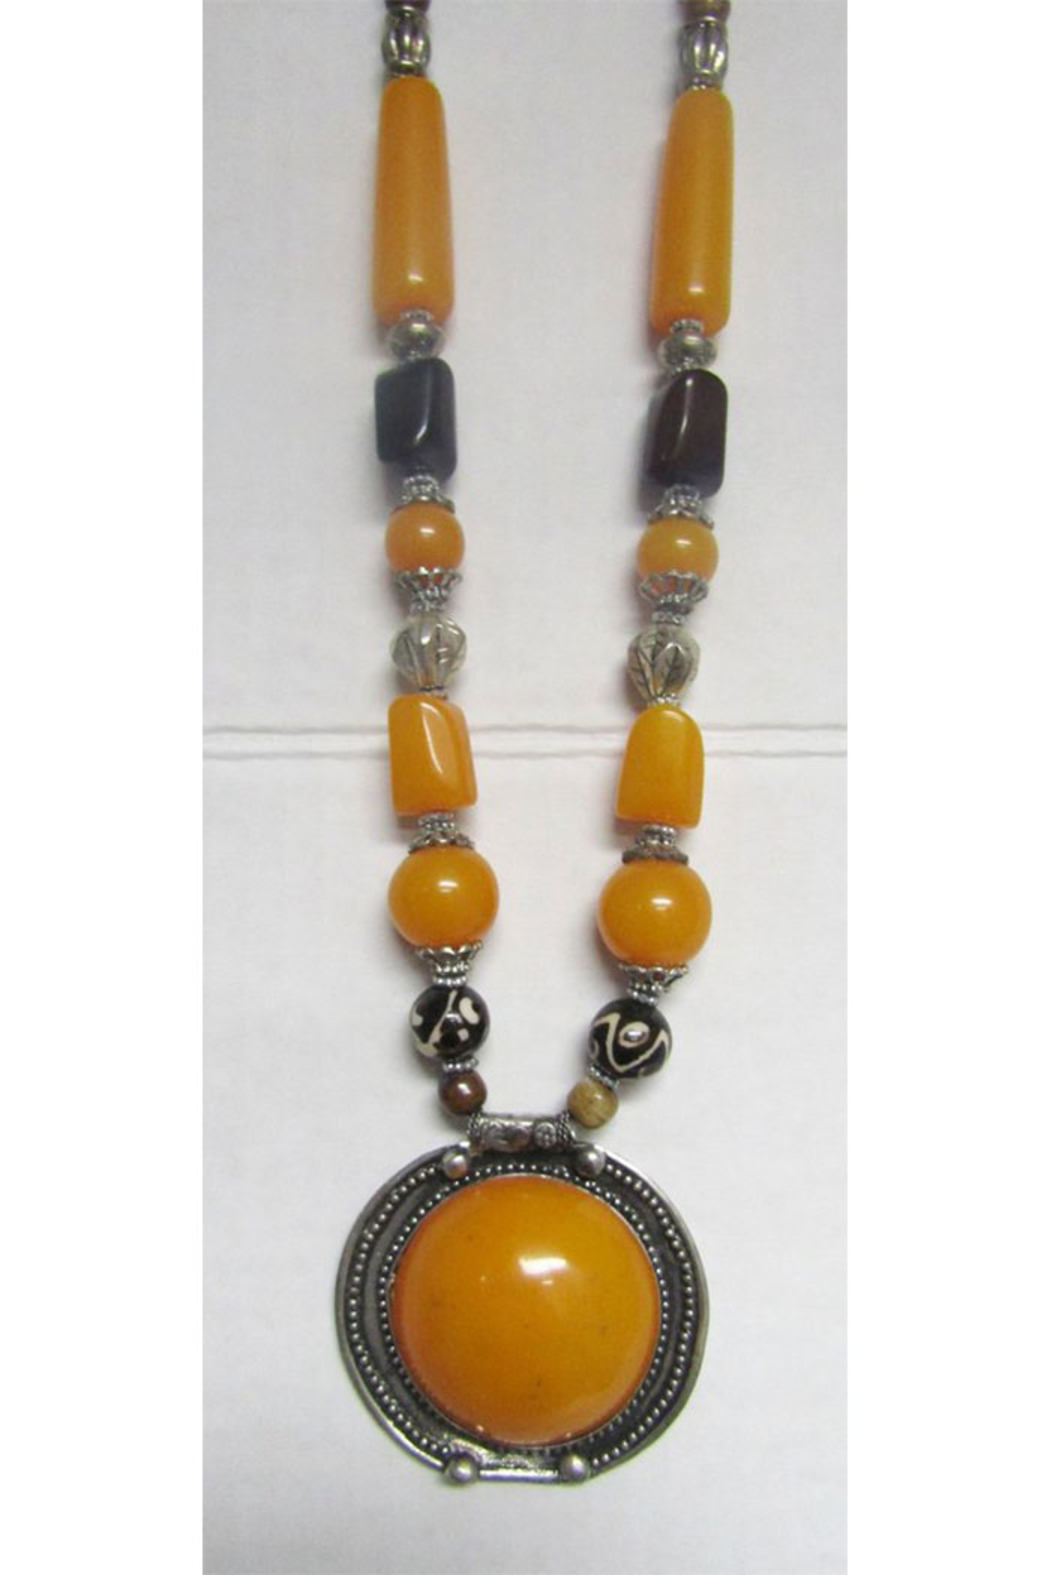 KIMBALS Tibetan Bohemian Style Beaded Necklace In Silver/Amber/Brown - Main Image